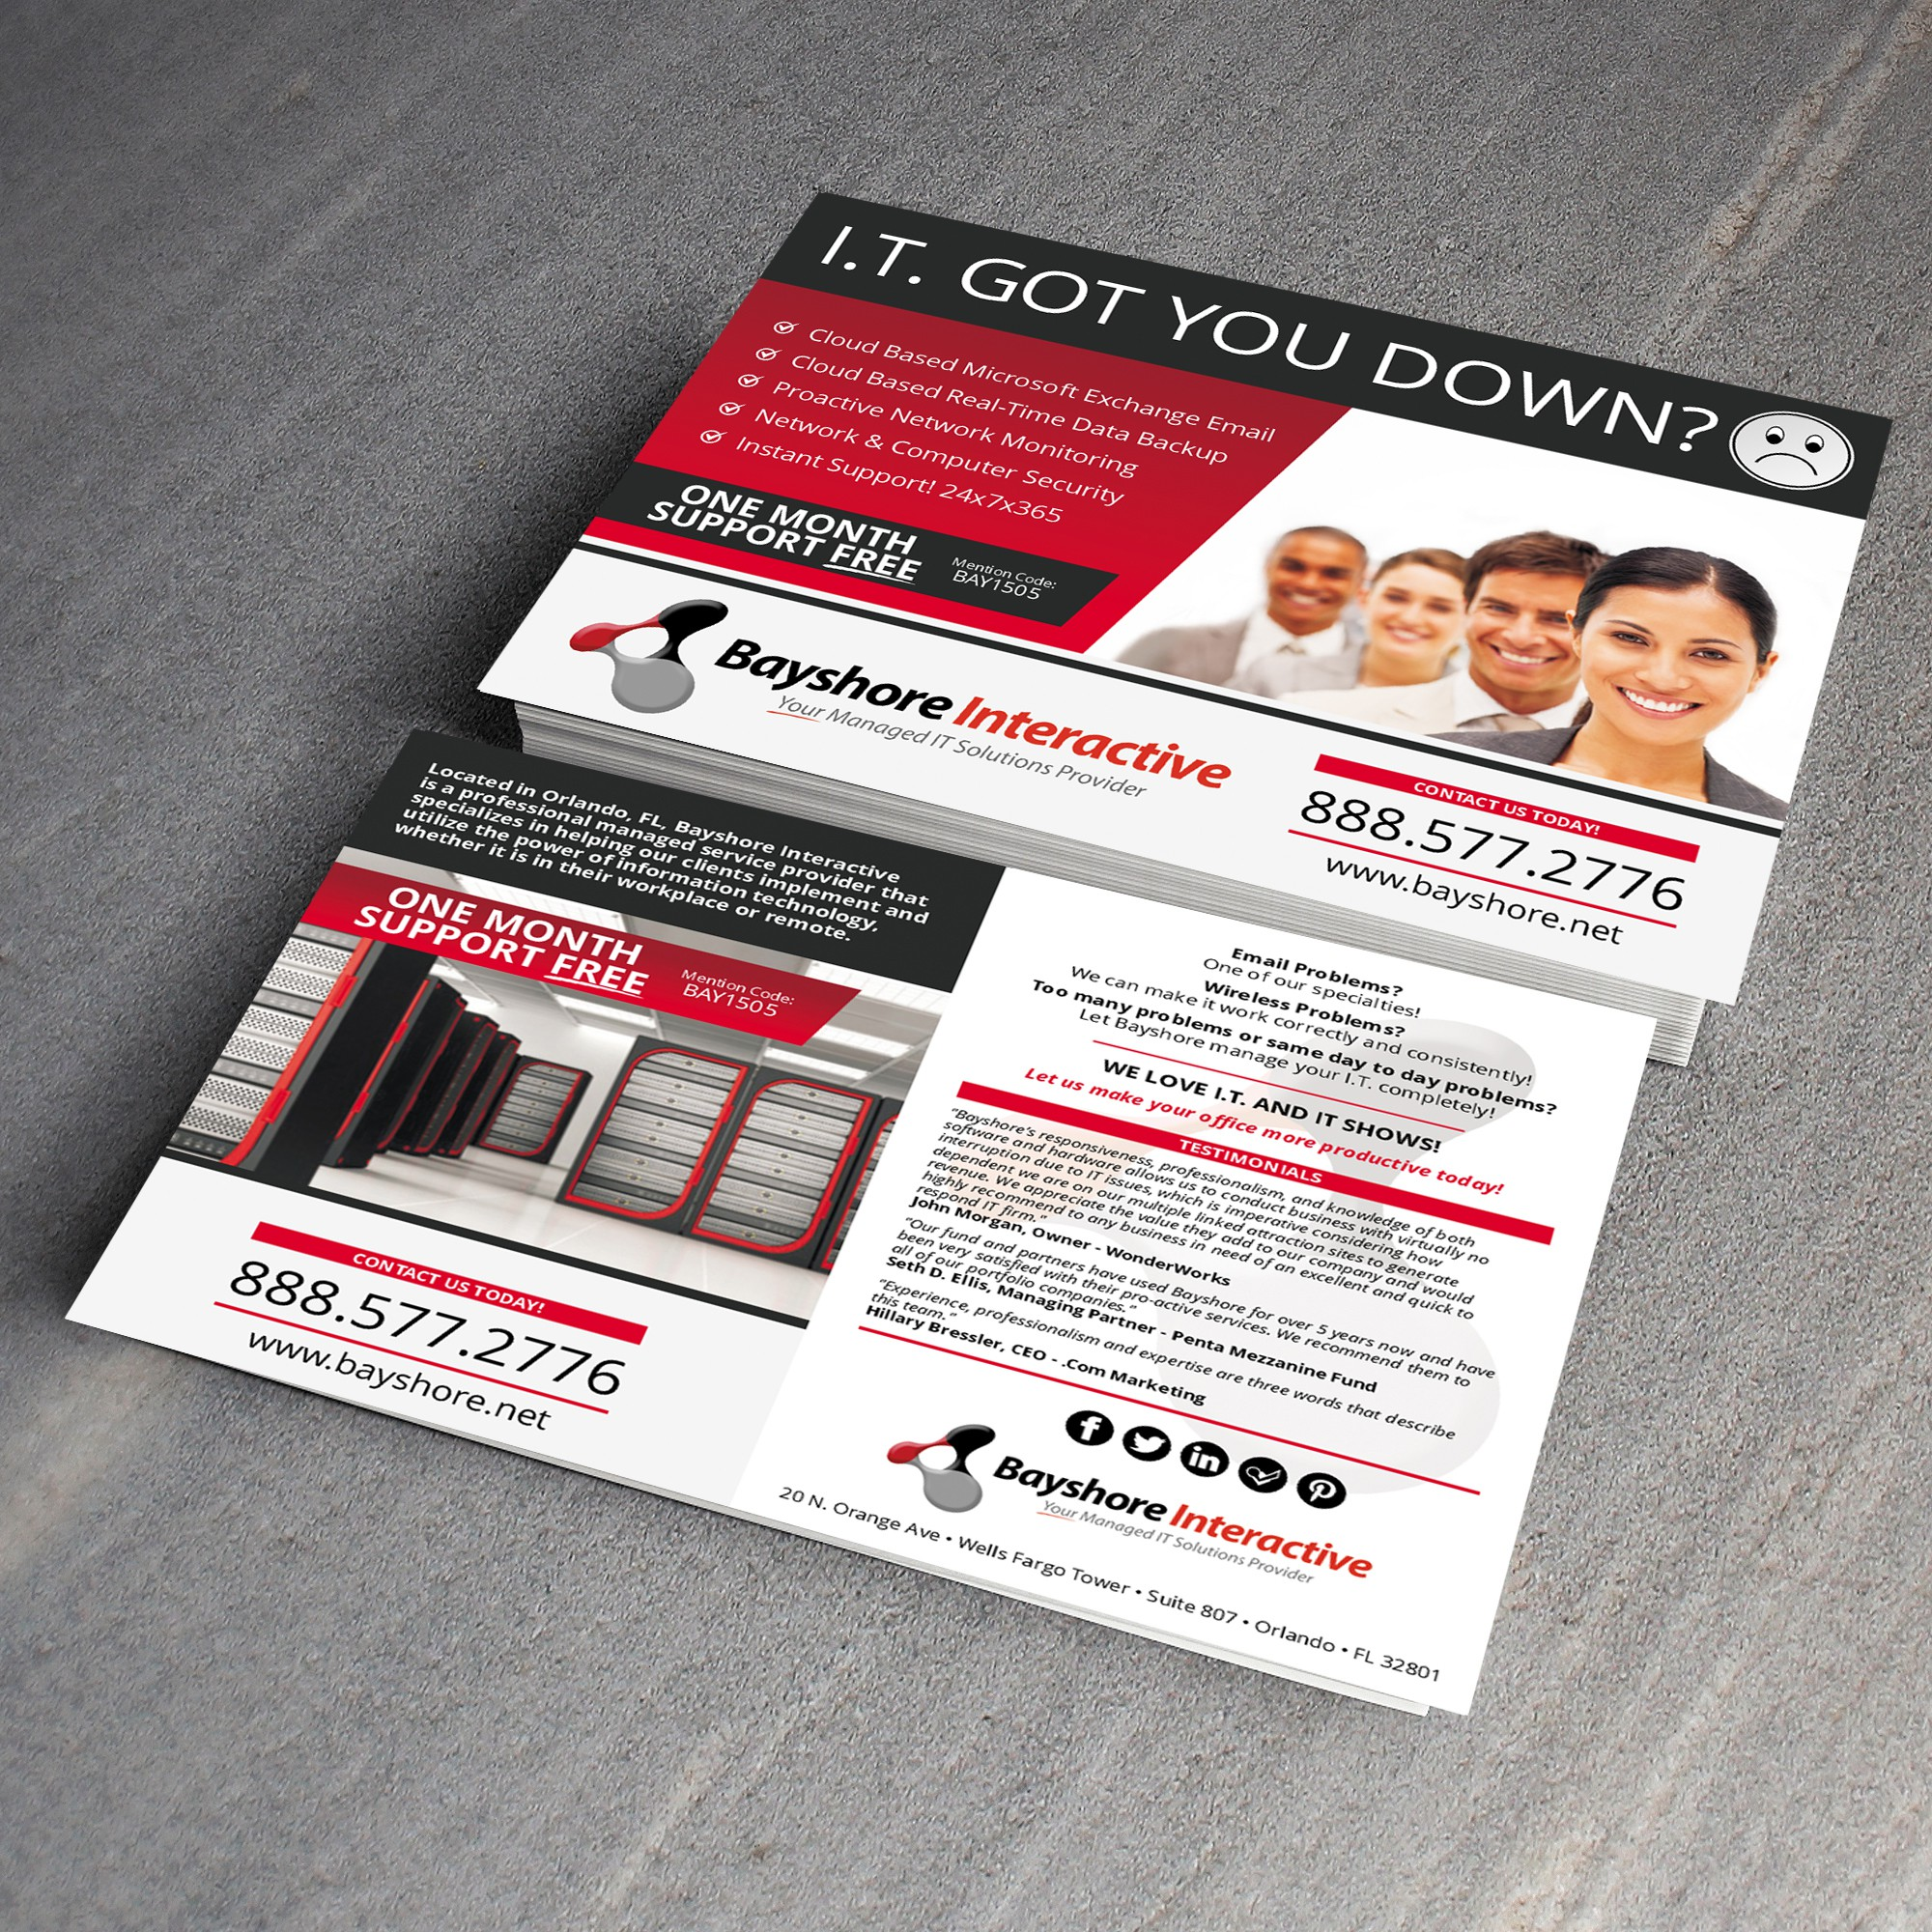 Create a 5x7 Postcard that showcases our IT firm!